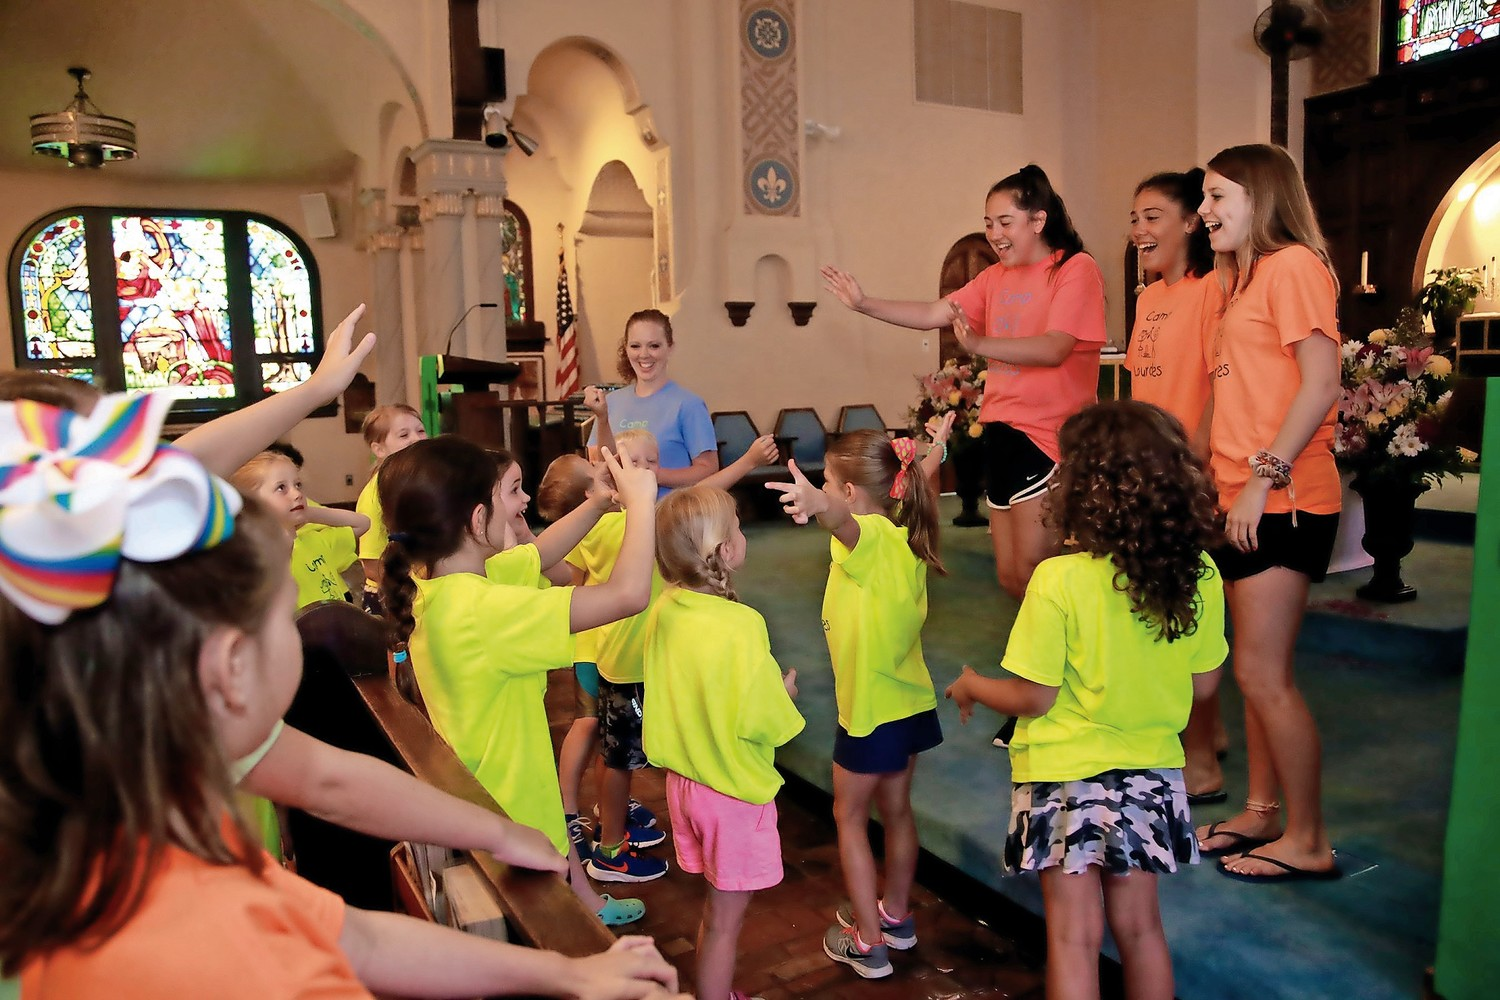 Counselors Ashley Grech, Sydney Aviles and Linda Freel led the campers during the music session.